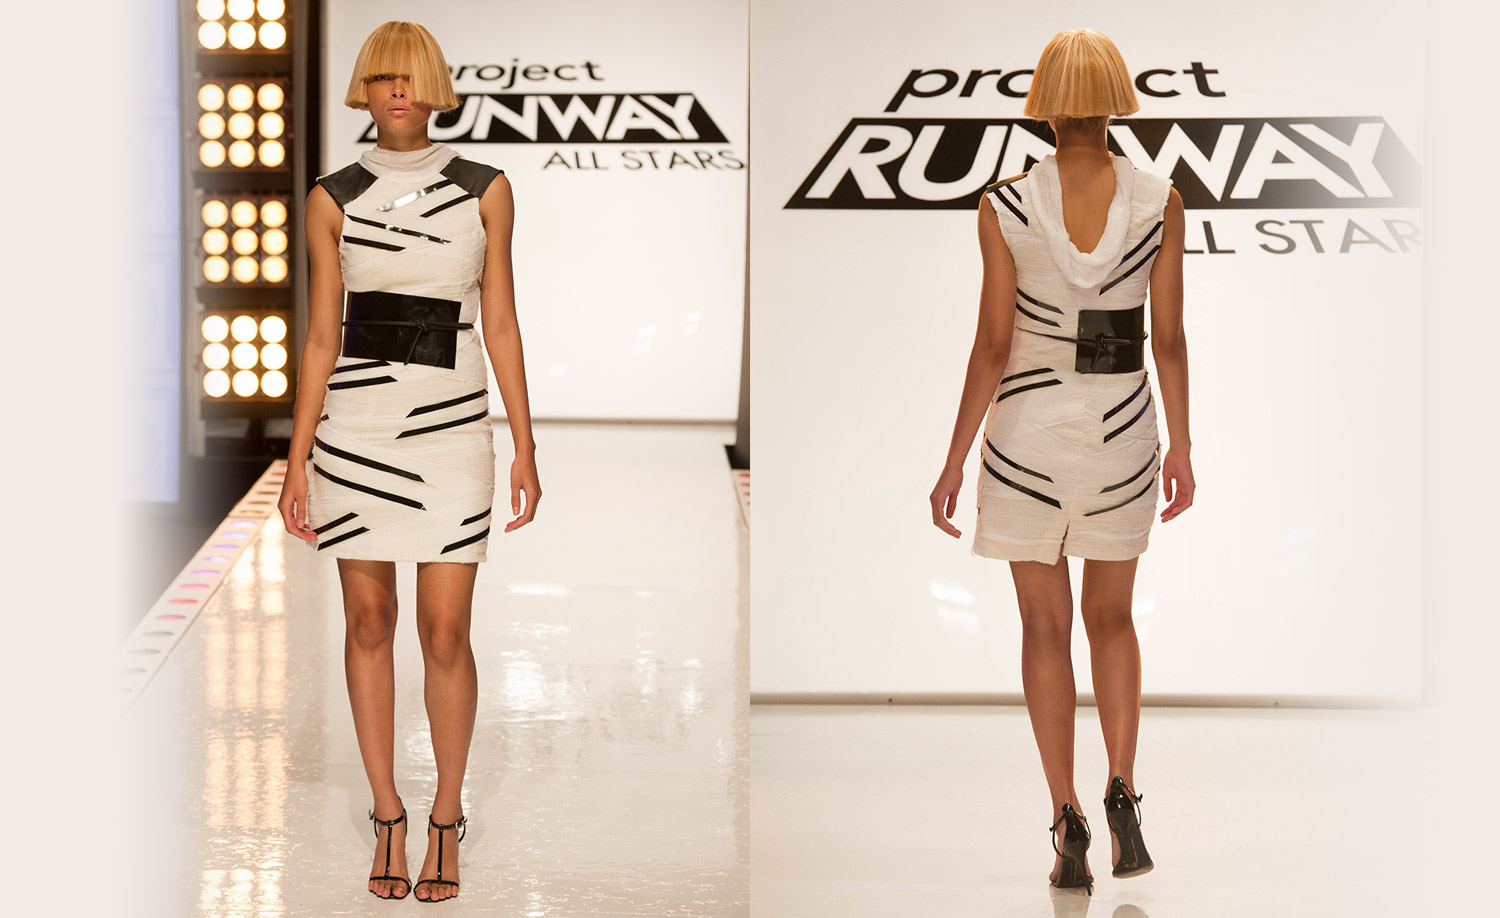 Project Runway All Stars: Dial 911 – Ani & Izzy